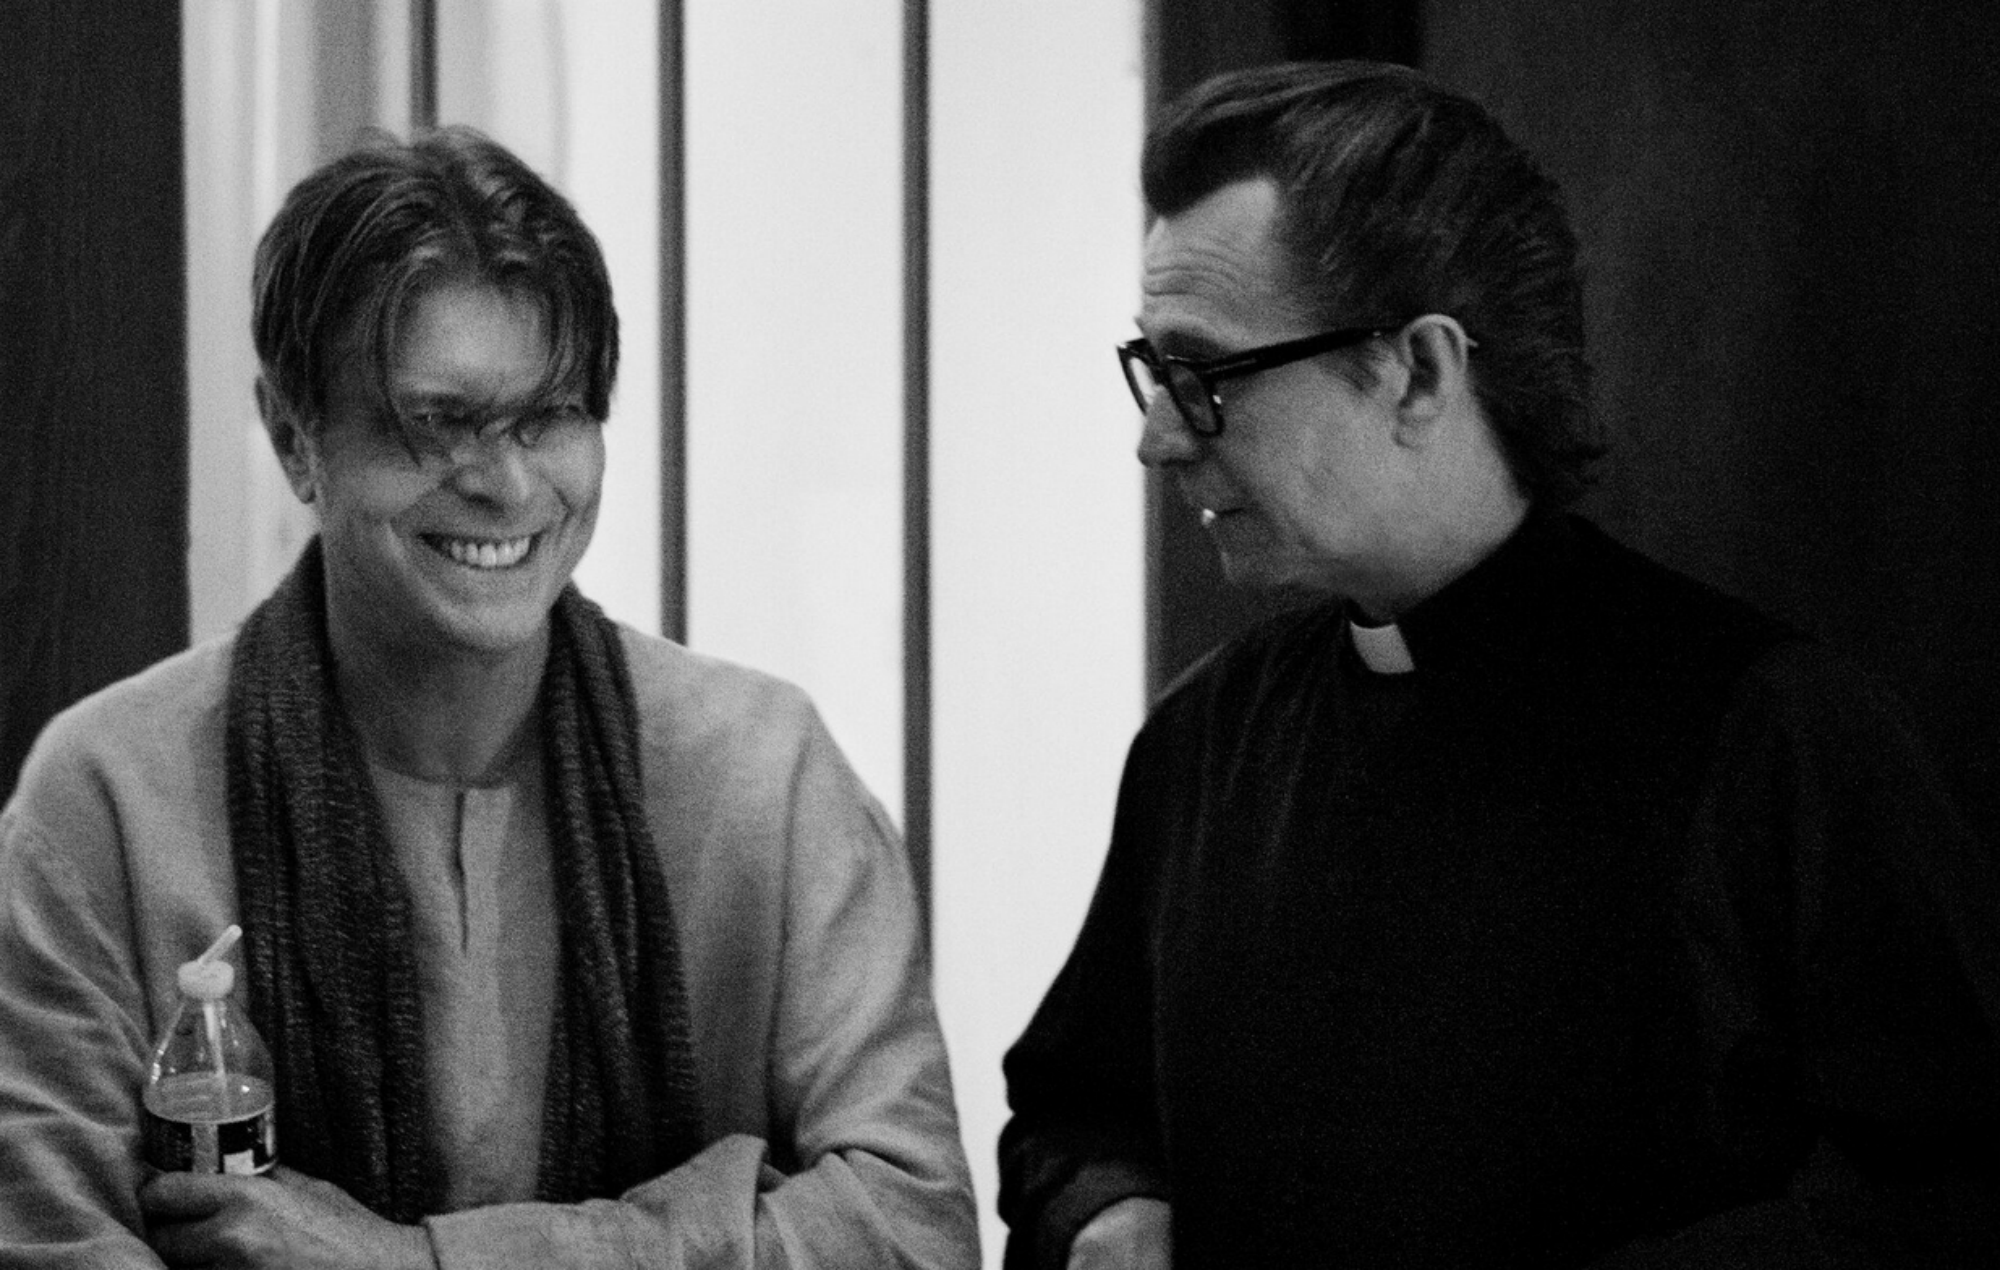 Gary oldman to provide narration on new david bowie is app